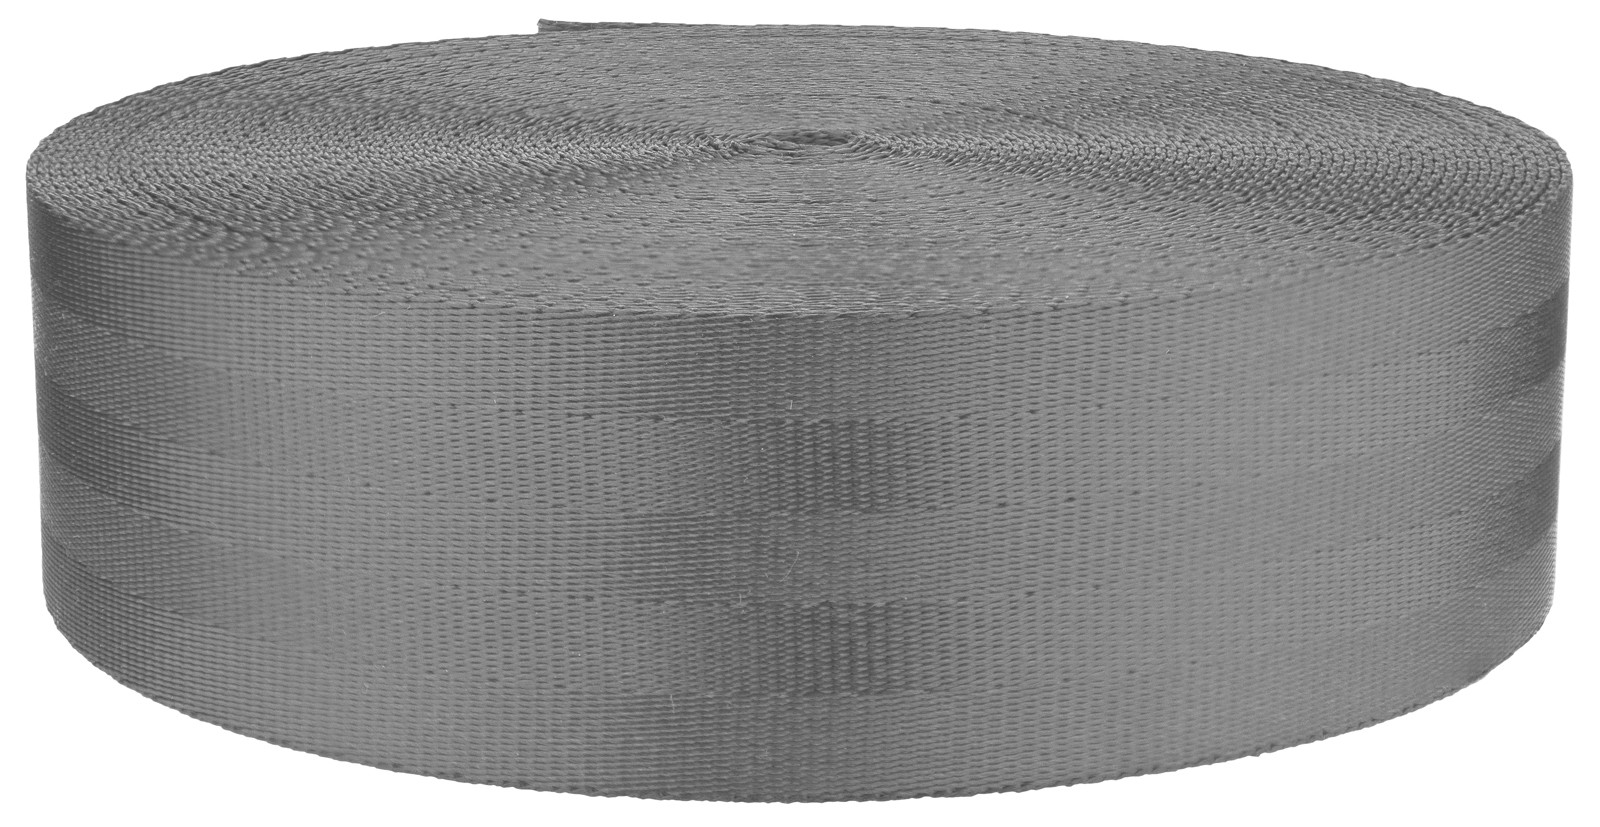 2 Inch Grey Seat-belt Polyester Webbing Closeout 10 Yards